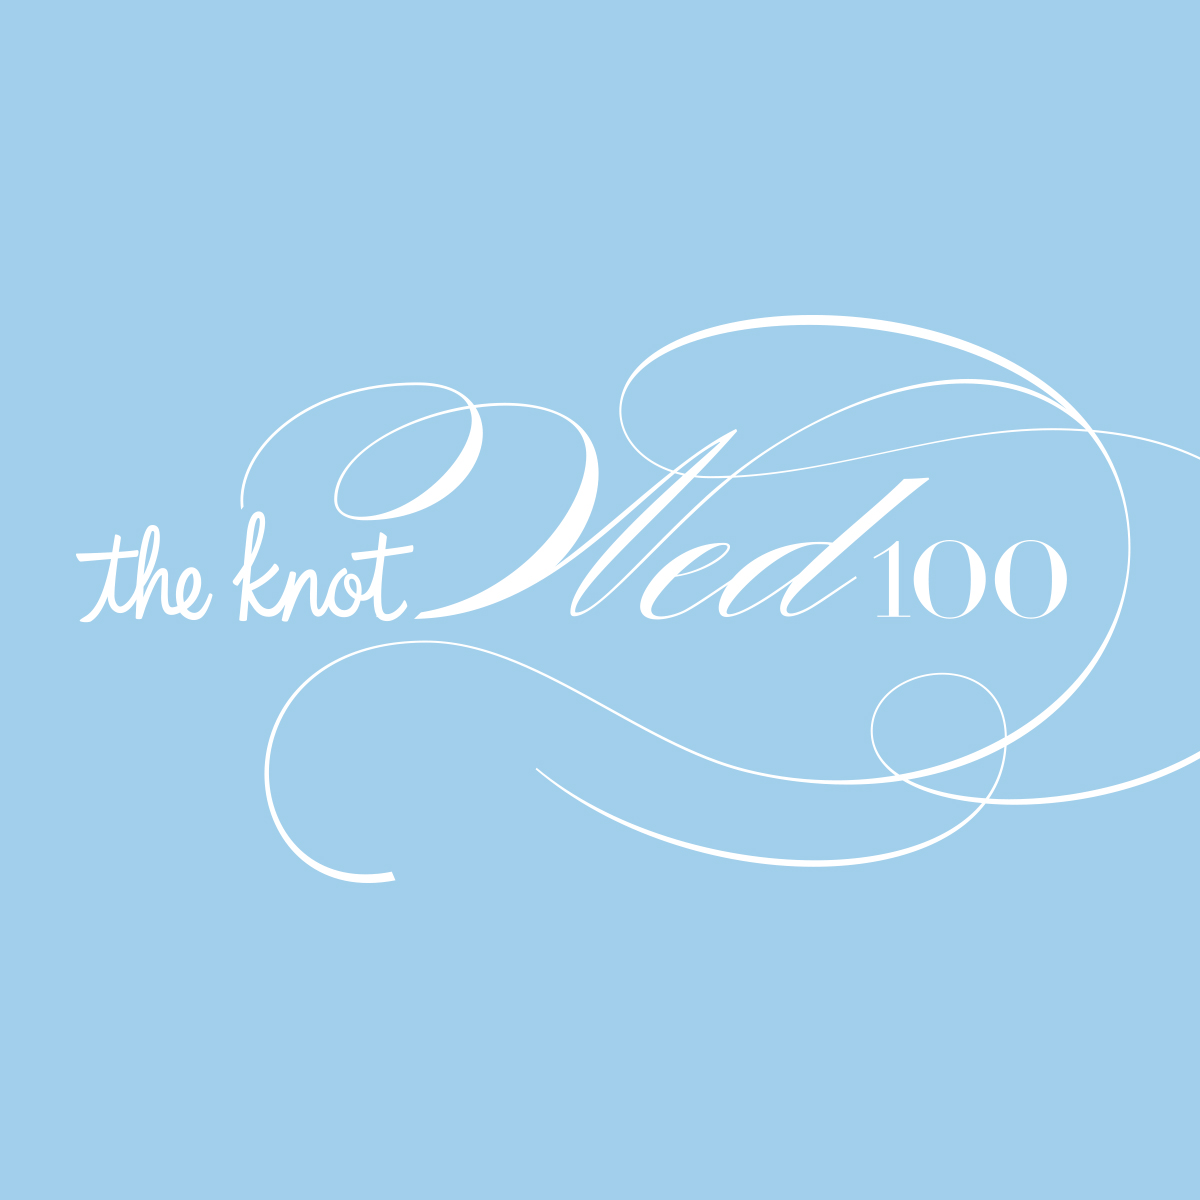 The Knot Wed 100 List